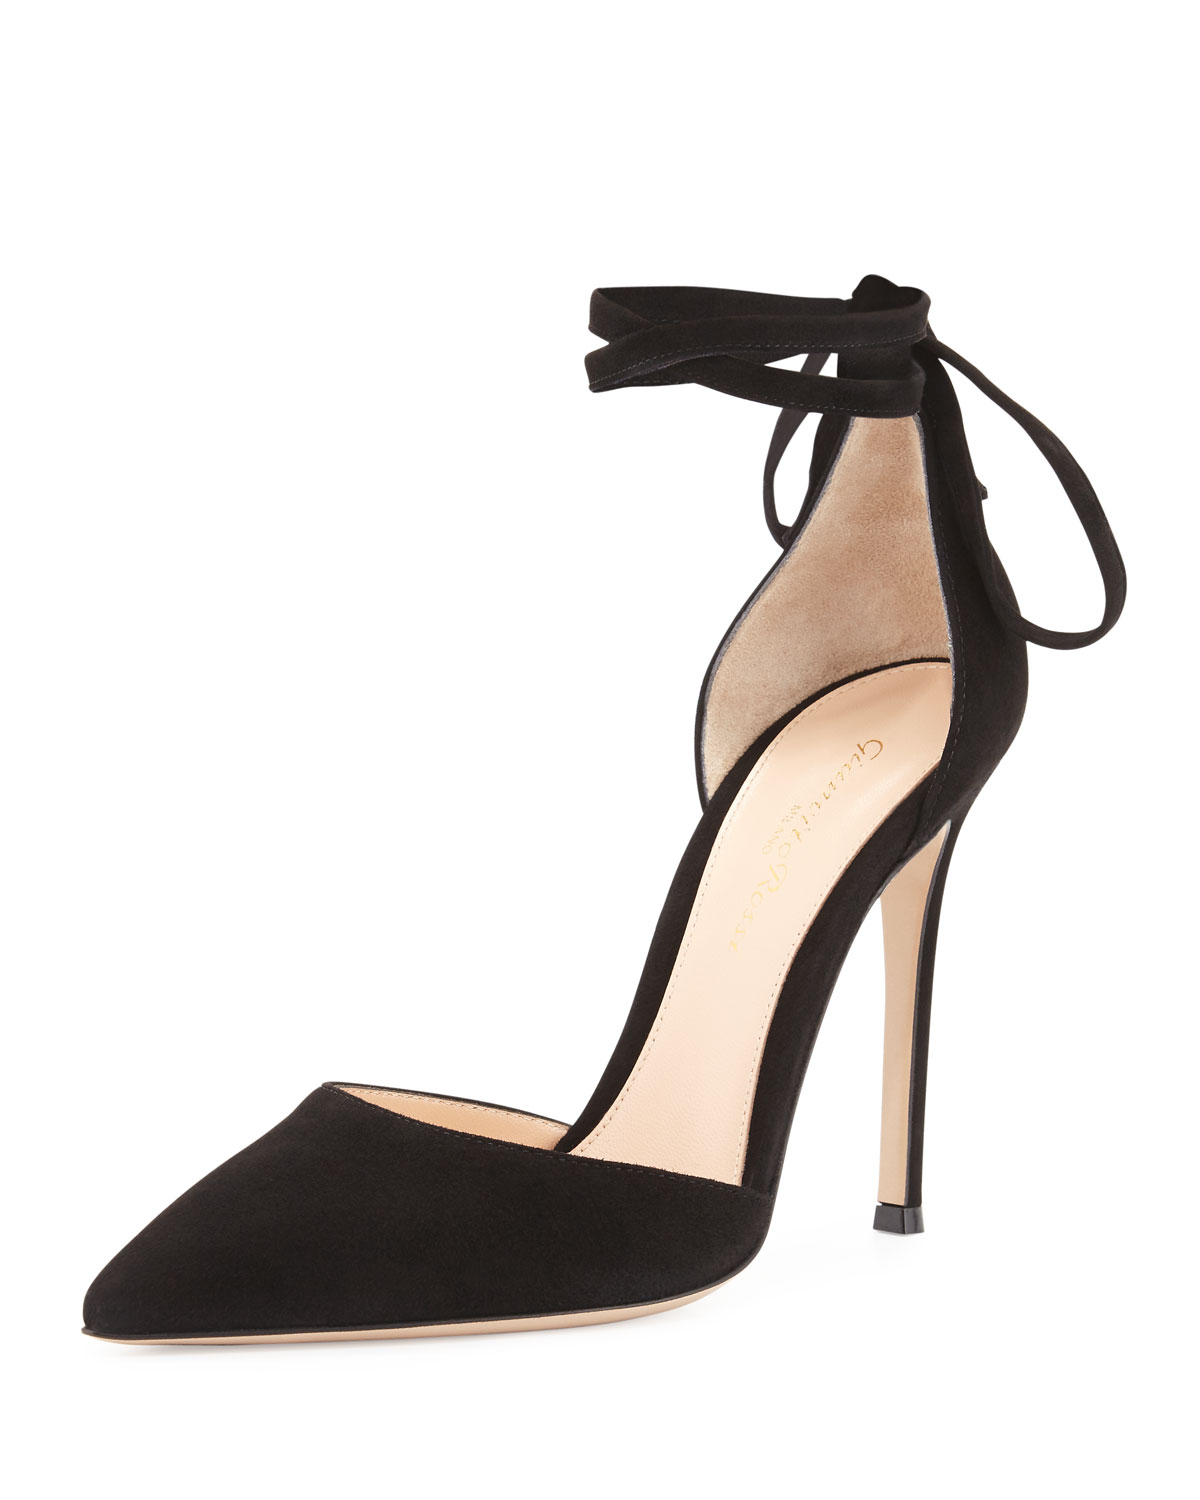 a3ce9727f Gianvito Rossi Suede Pointed-Toe Ankle-Wrap Pump, Black   Neiman Marcus